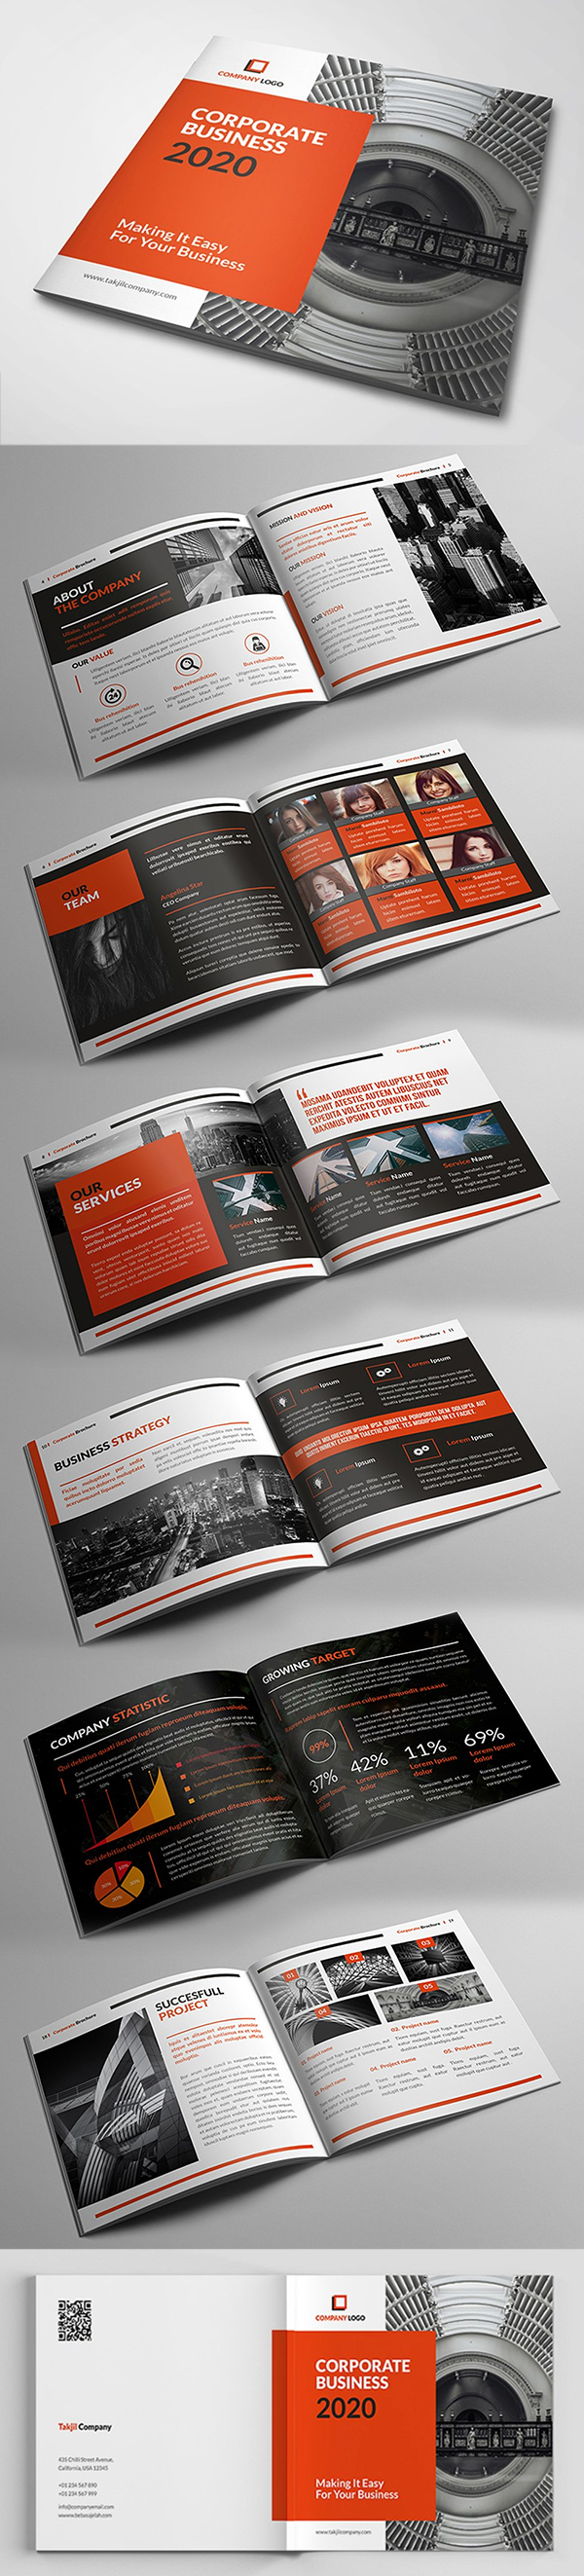 Pakumantan - A Corporate Brochure